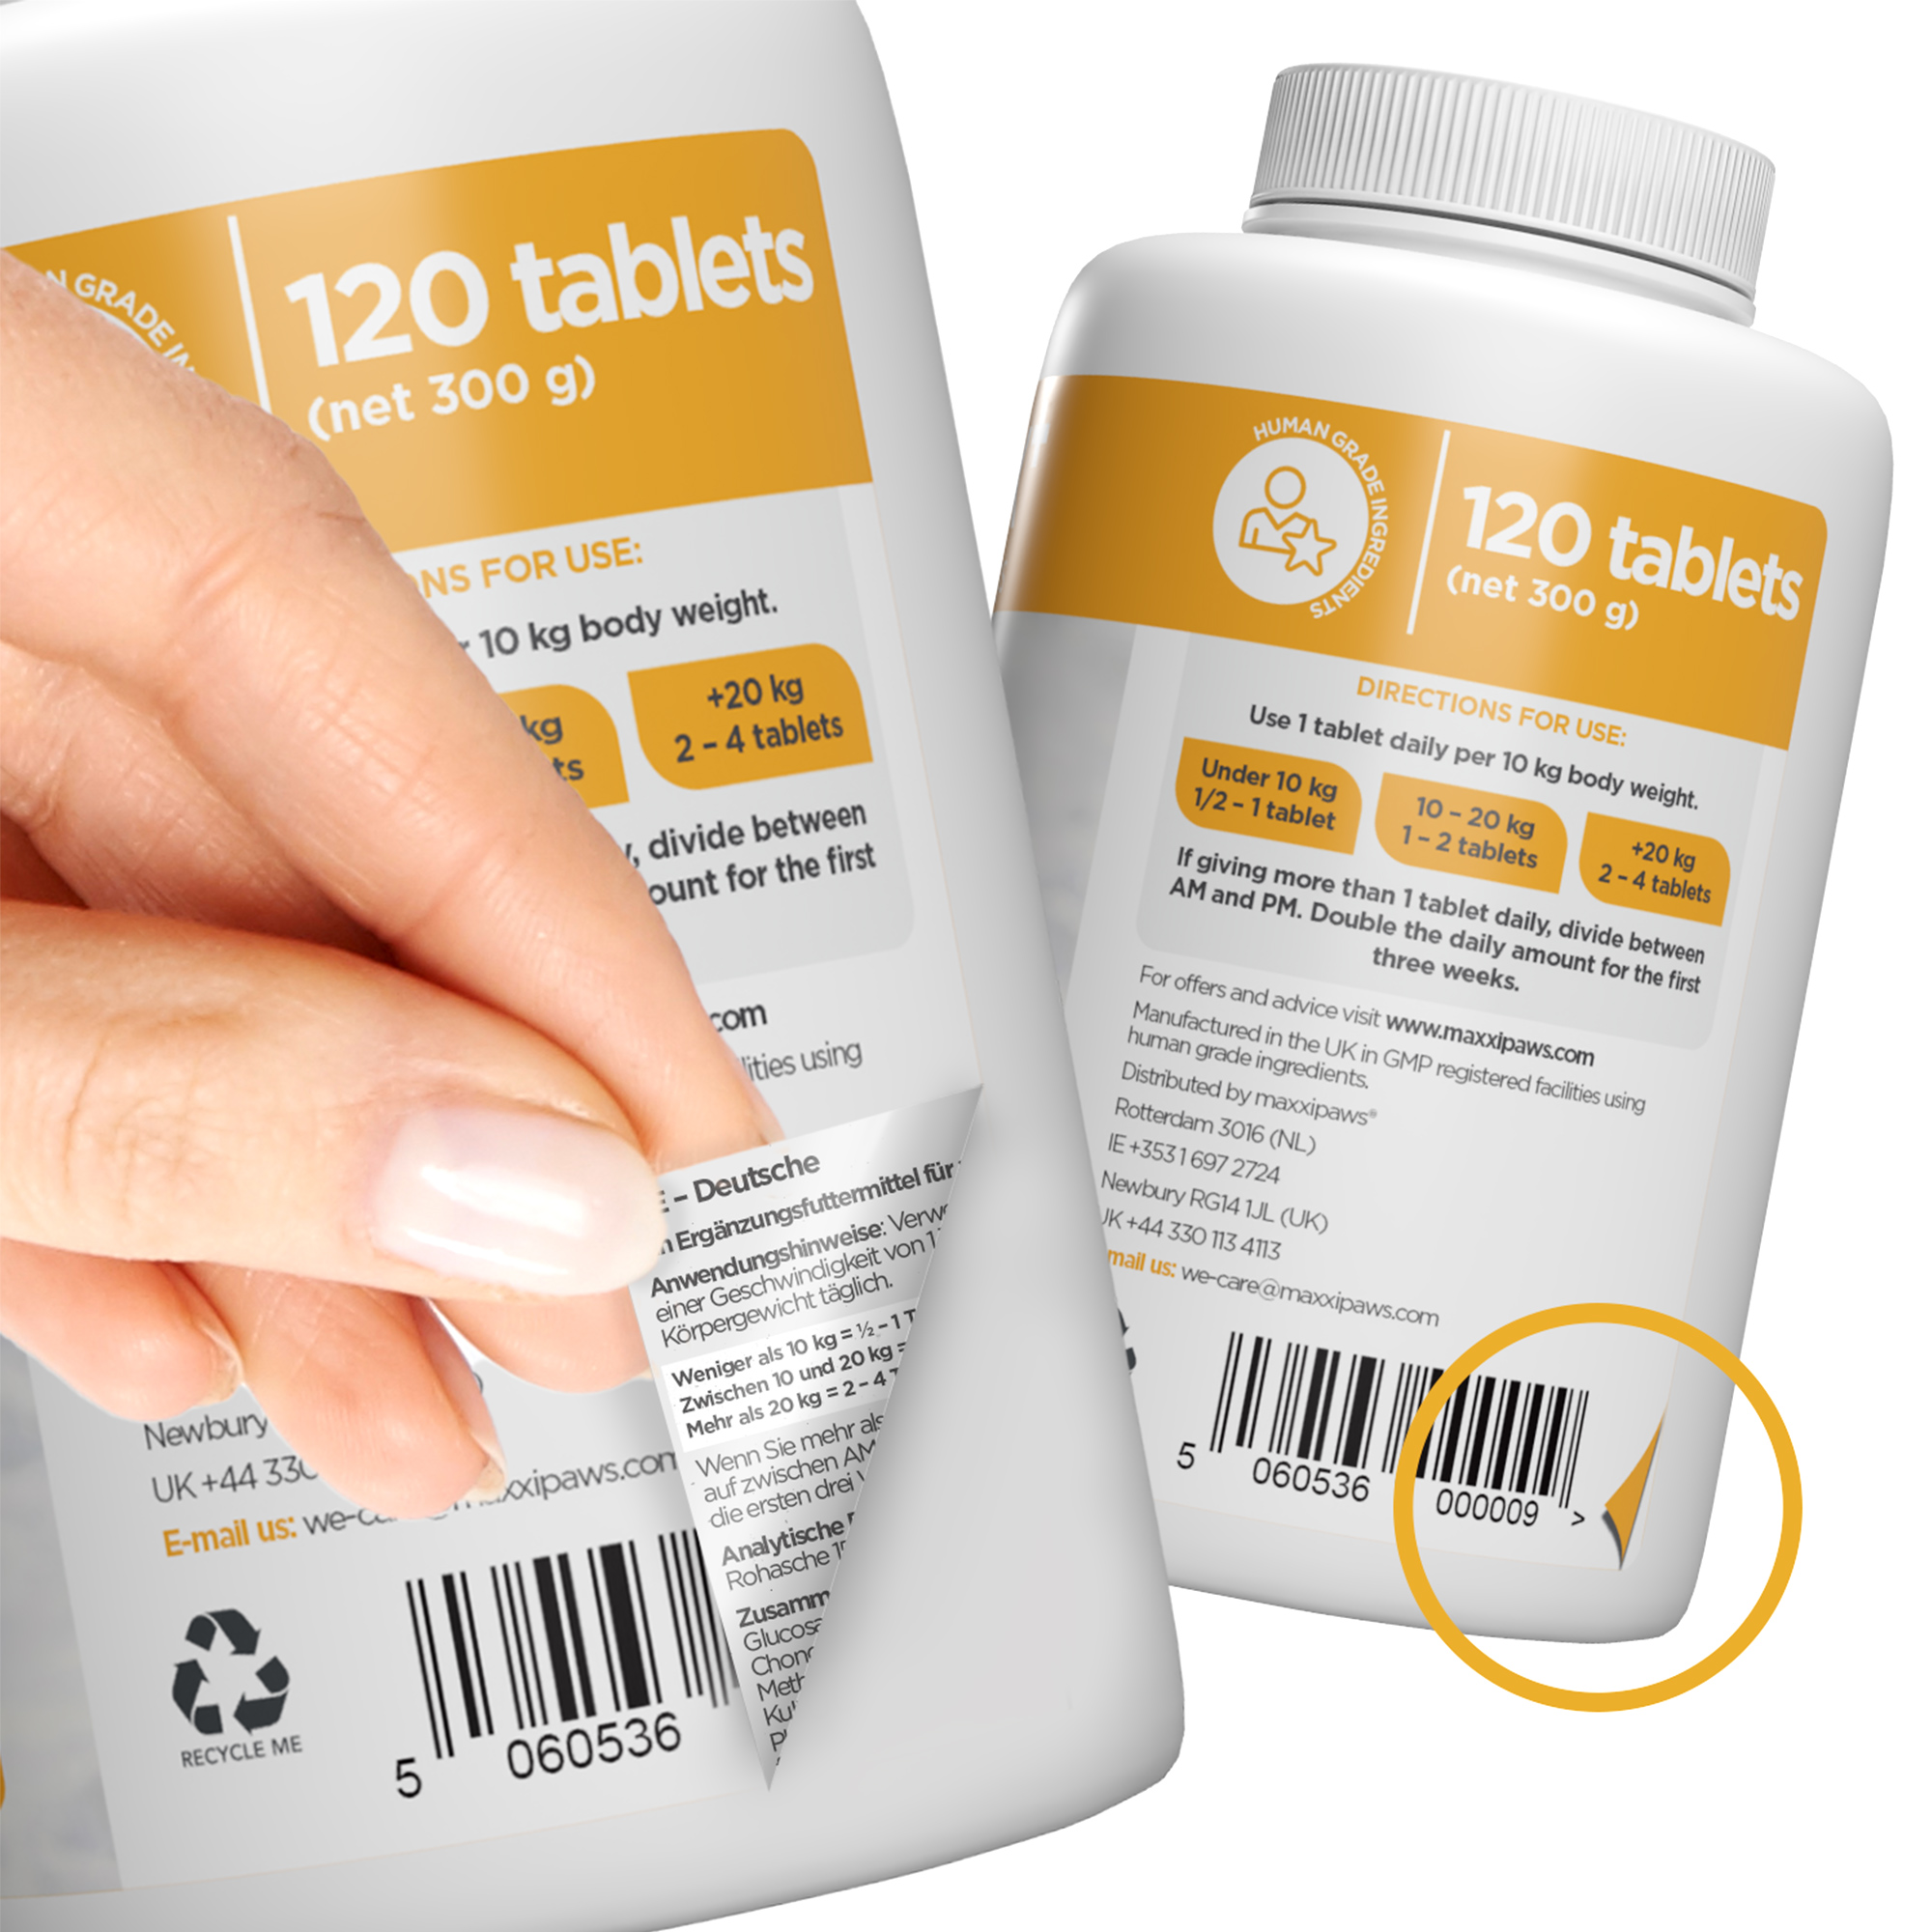 maxxiflex dog joint supplement directions for use in german french spanish italian swedish and deutch